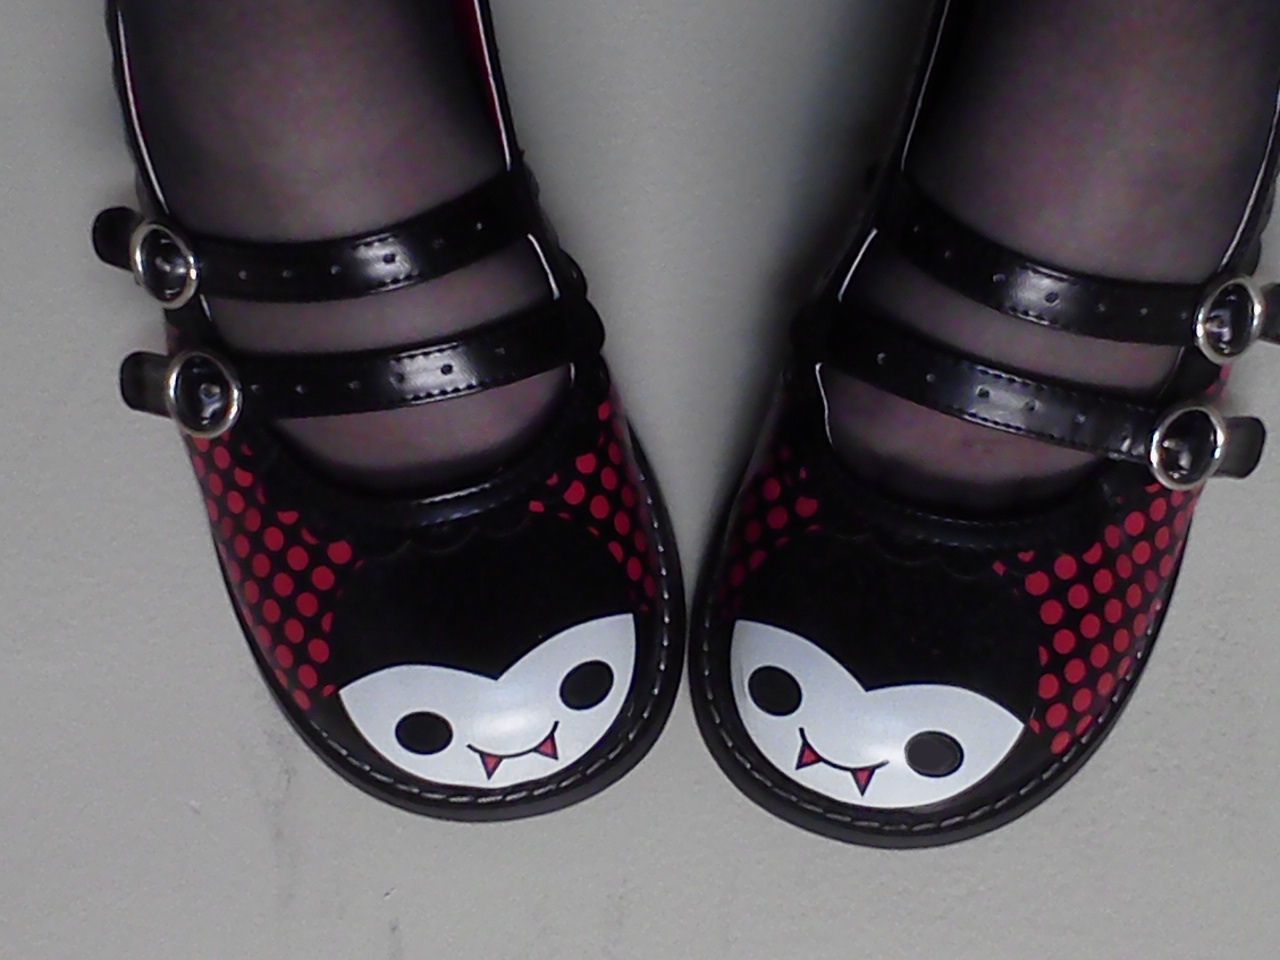 These are my favorite shoes.  They are so cute and have little vampire faces. The fabulous T.U.K. made them.